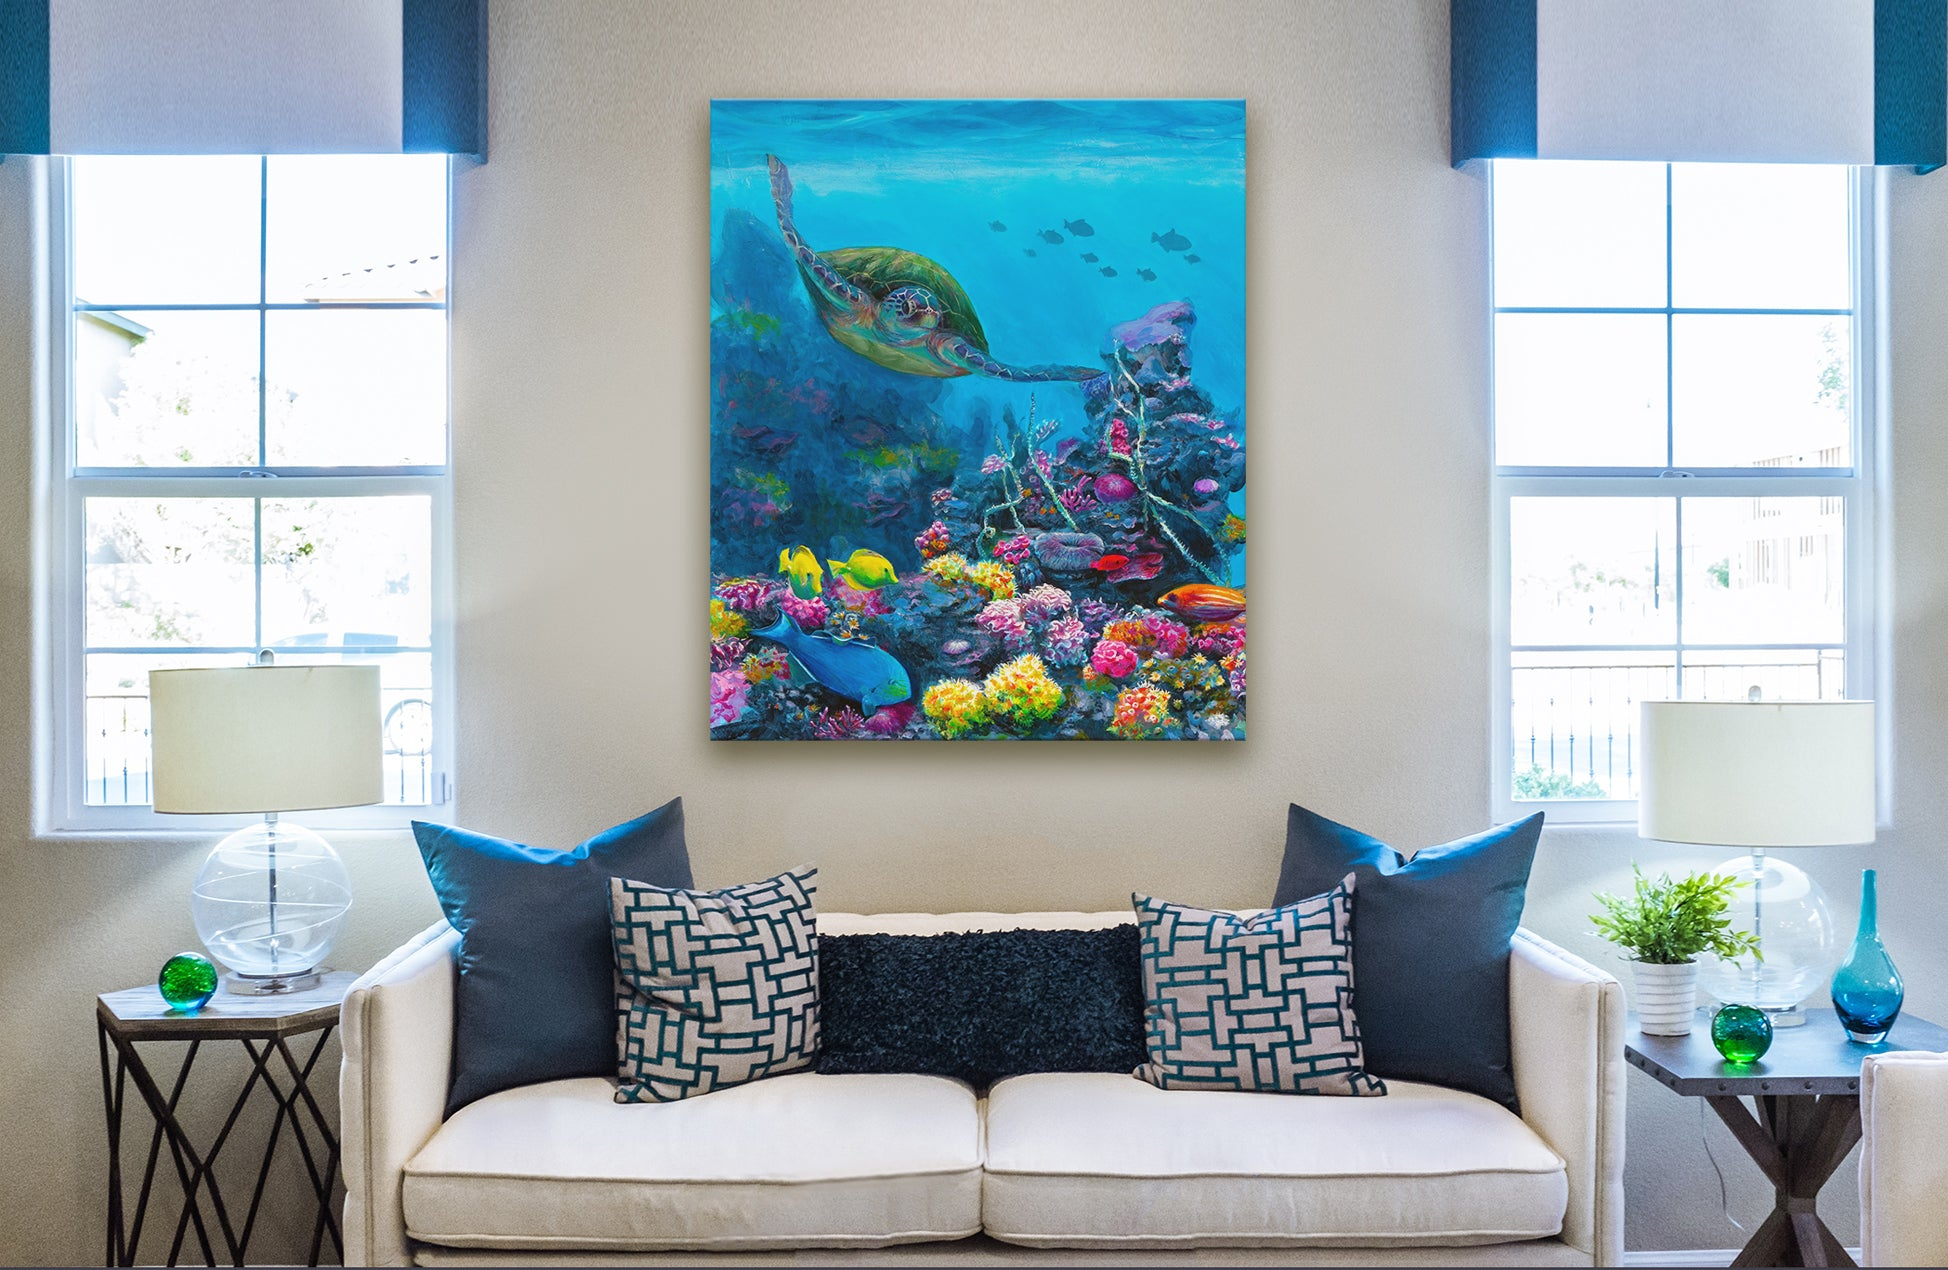 Hawaiian Green Sea Turtle art and coral Reef - Underwater Painting Canvas Wall Art in Home Decor Interior